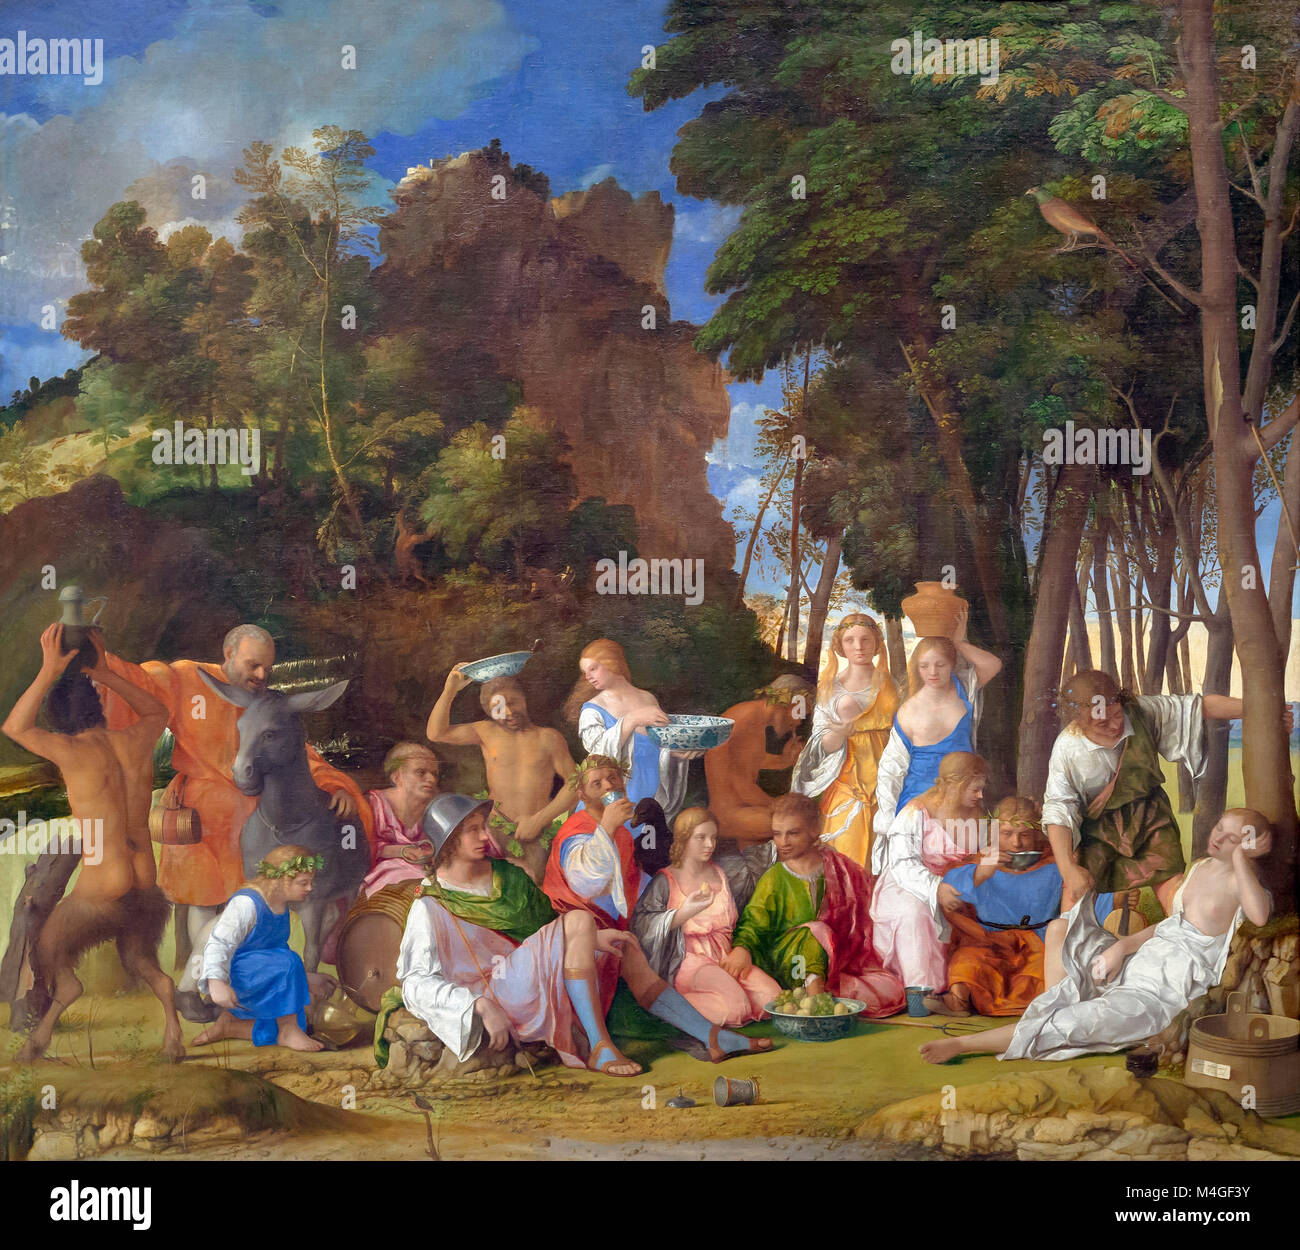 The Feast of the Gods, Giovanni Bellini and Titian, 1514-1529, National Gallery of Art, Washington DC, USA, North - Stock Image